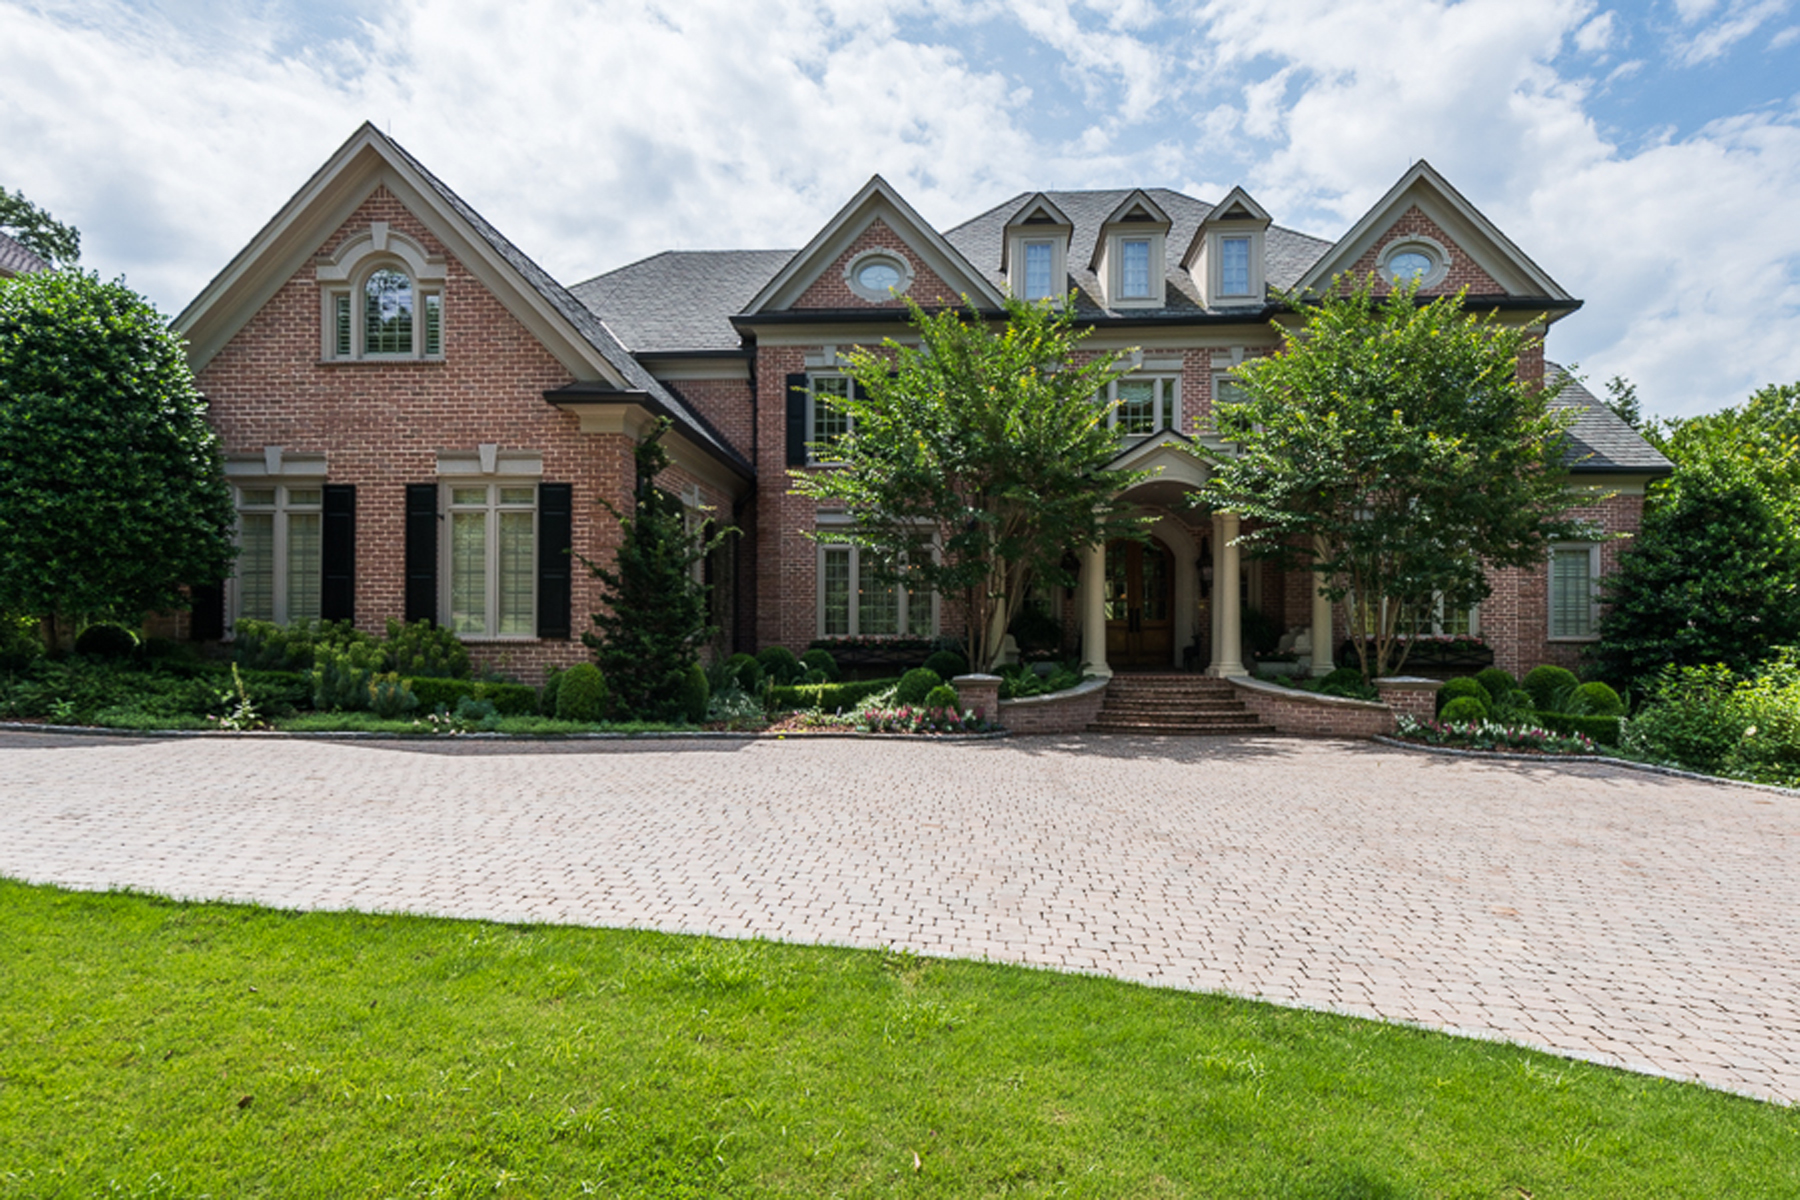 独户住宅 为 销售 在 A Masterpiece In Johns Creek Most Prestigious Gated Golf Community 490 Covington Cove 阿法乐特, 乔治亚州, 30022 美国